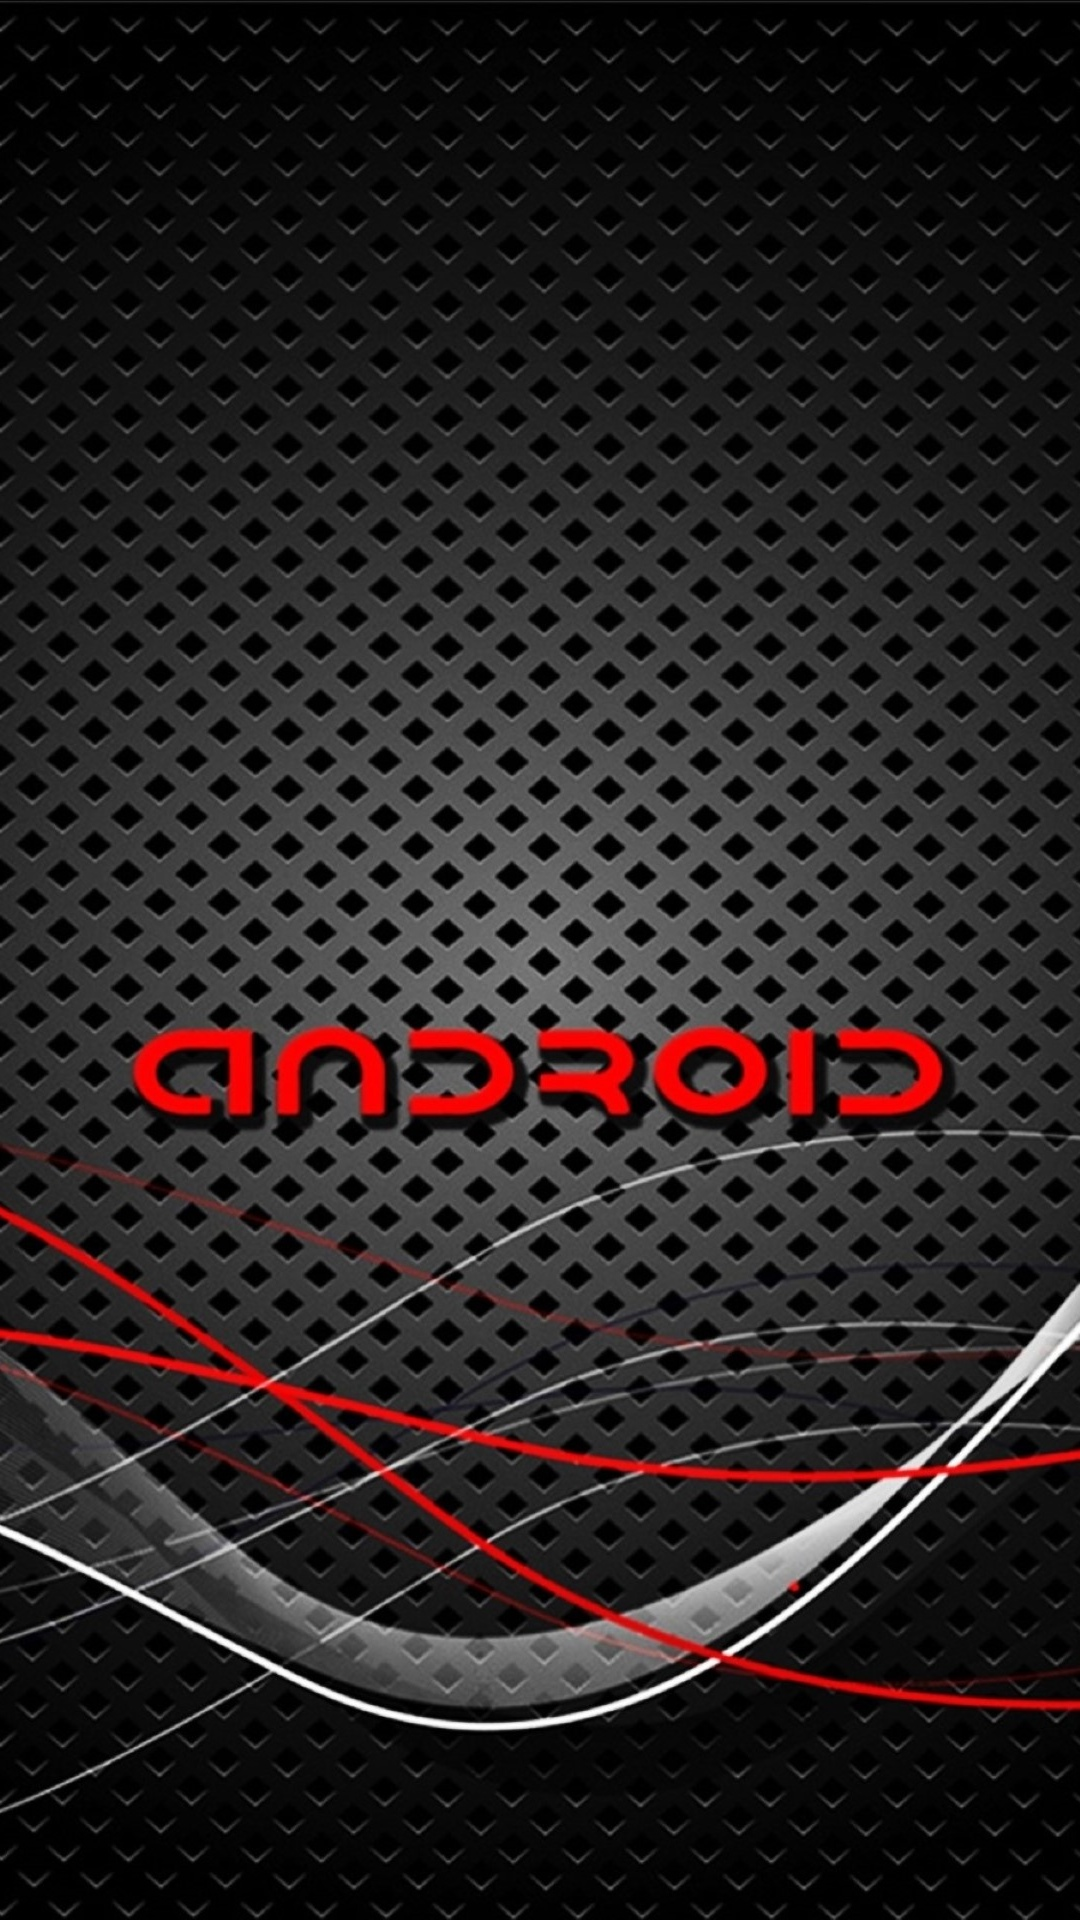 Best Android Wallpaper 2019: Wallpapers for Samsung Galaxy S4